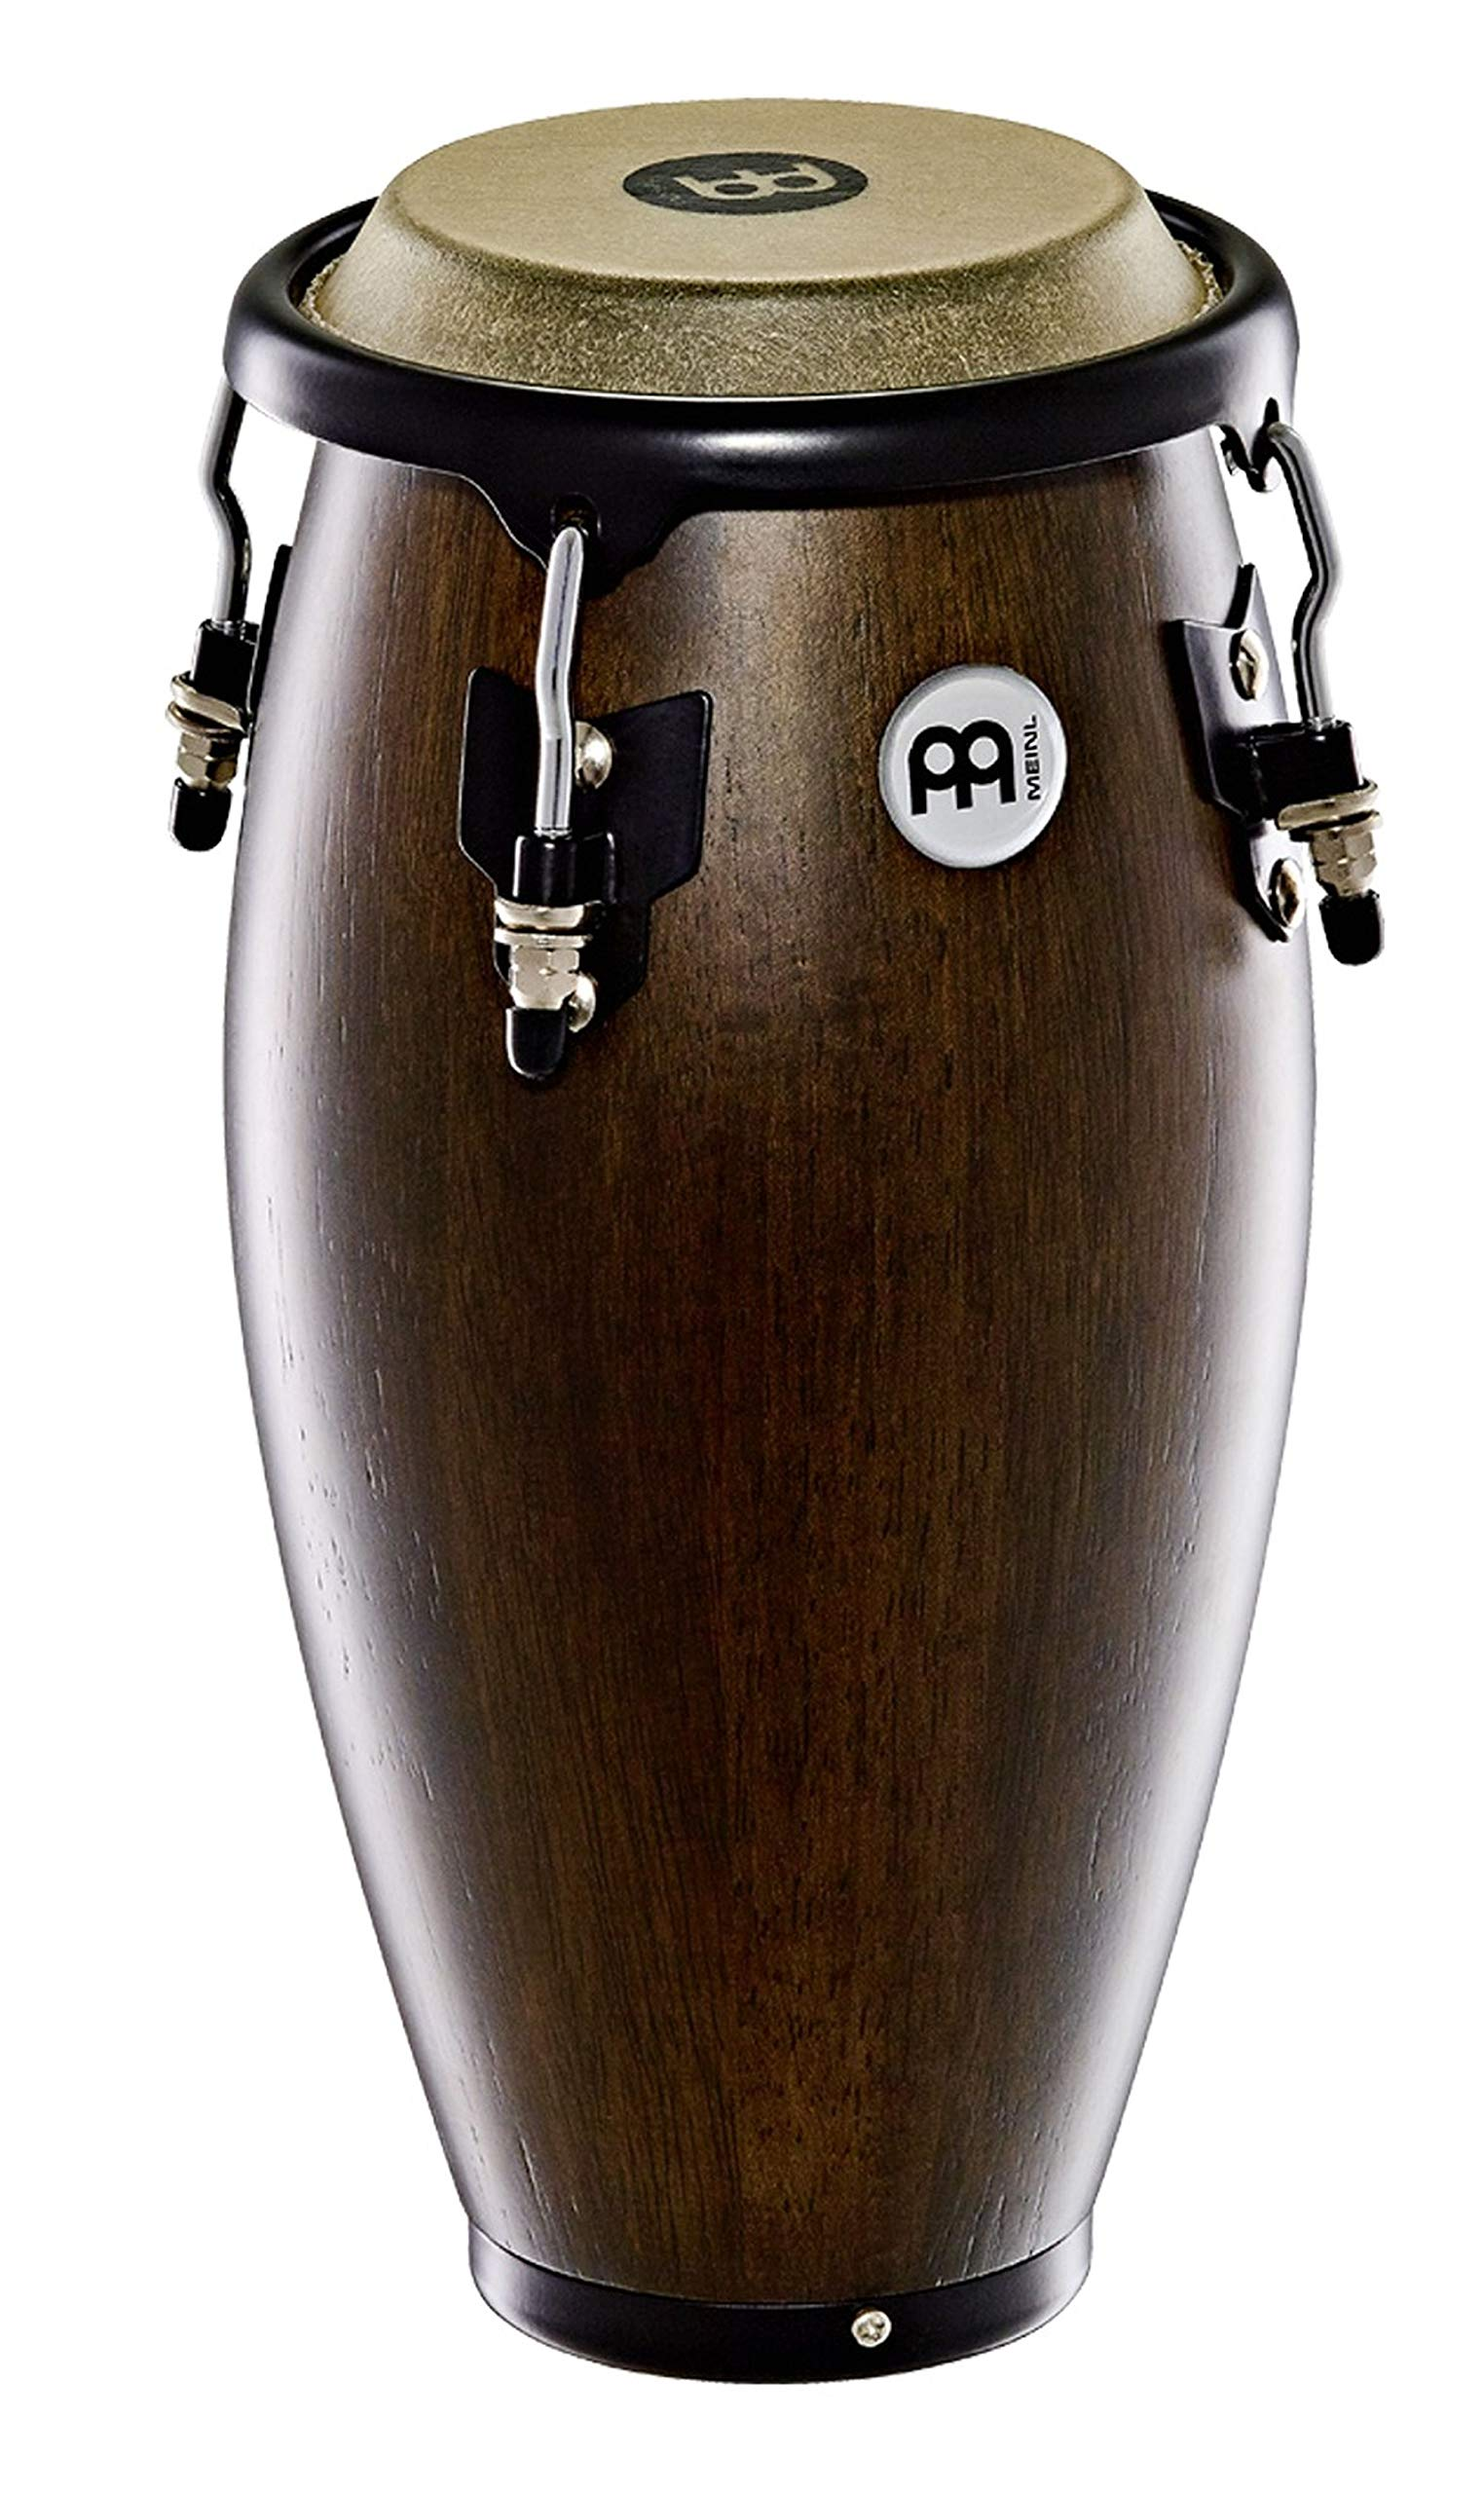 Meinl Percussion 4 1/2'' Mini Conga with Hardwood Shell and Tunable Buffalo Skin Head - NOT MADE IN CHINA - Vintage Wine Barrel, 2-YEAR WARRANTY, MC100VWB) by Meinl Percussion